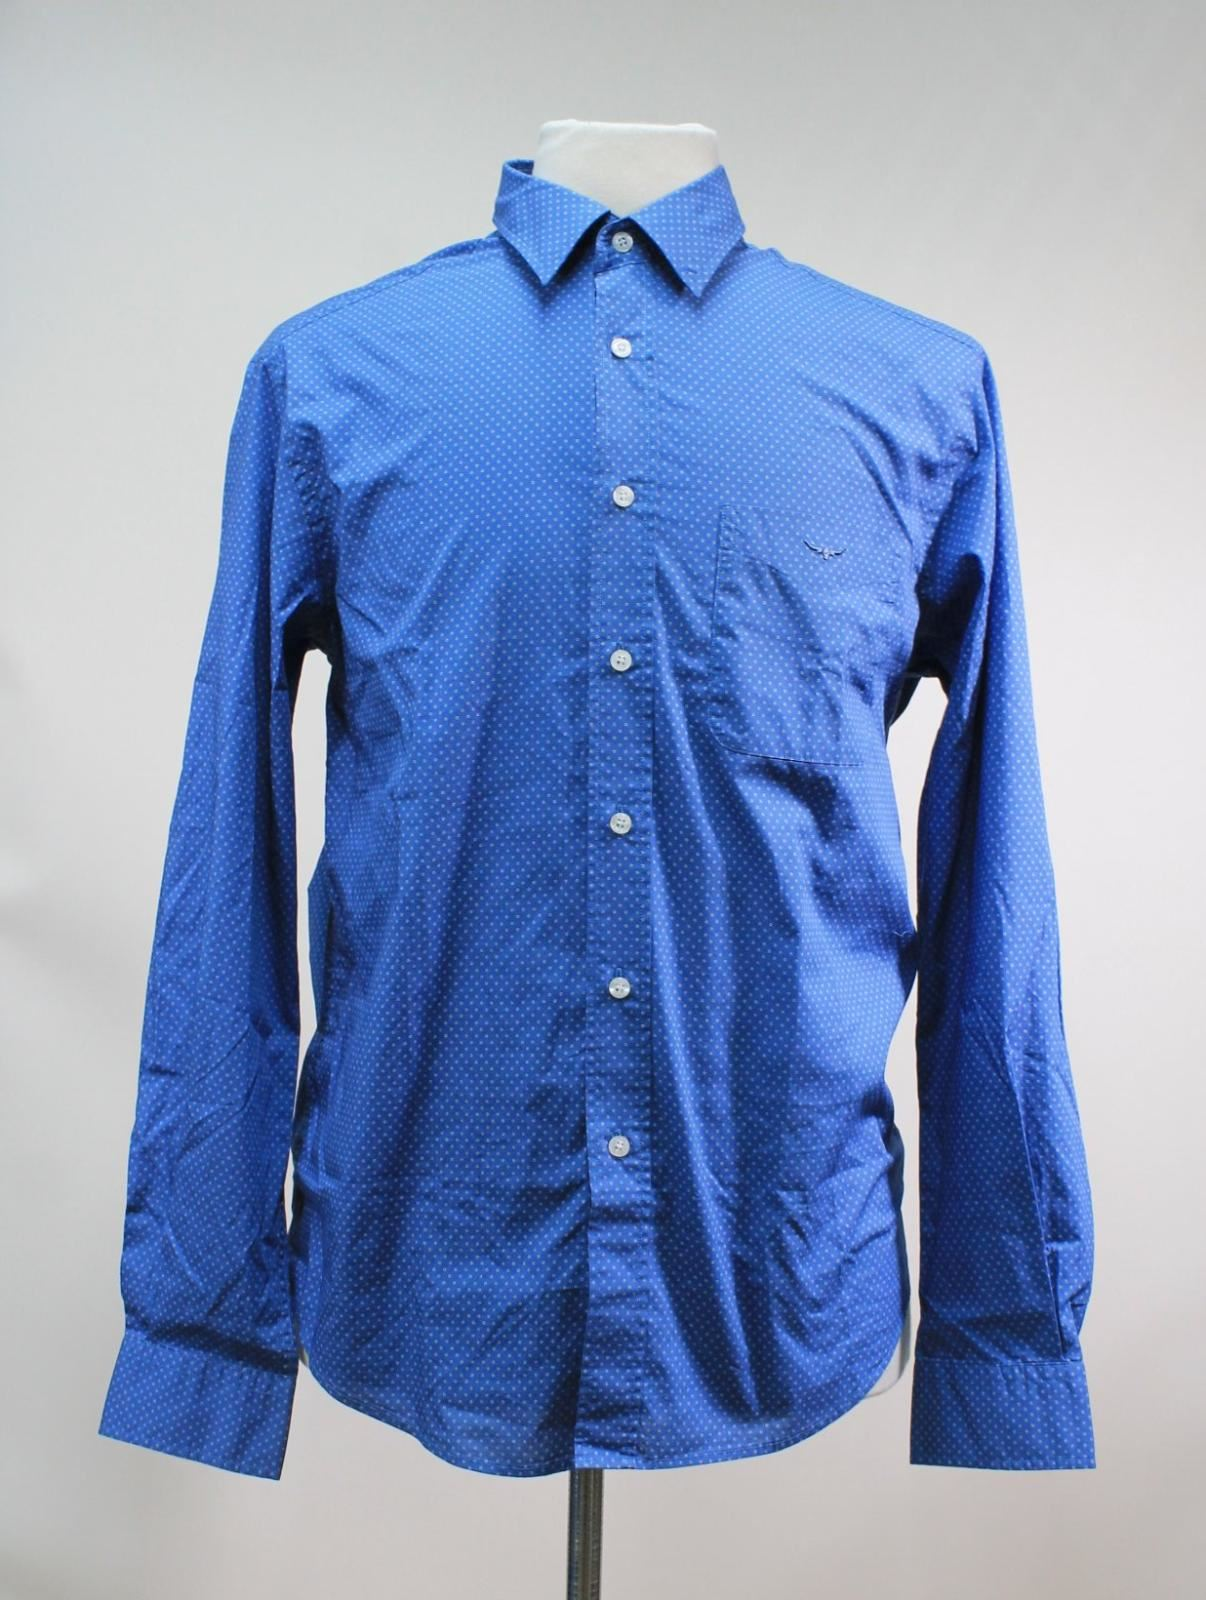 BNWT R. M. WILLIAMS Men's bluee Spotted Cotton Collared Collins Shirt Size M